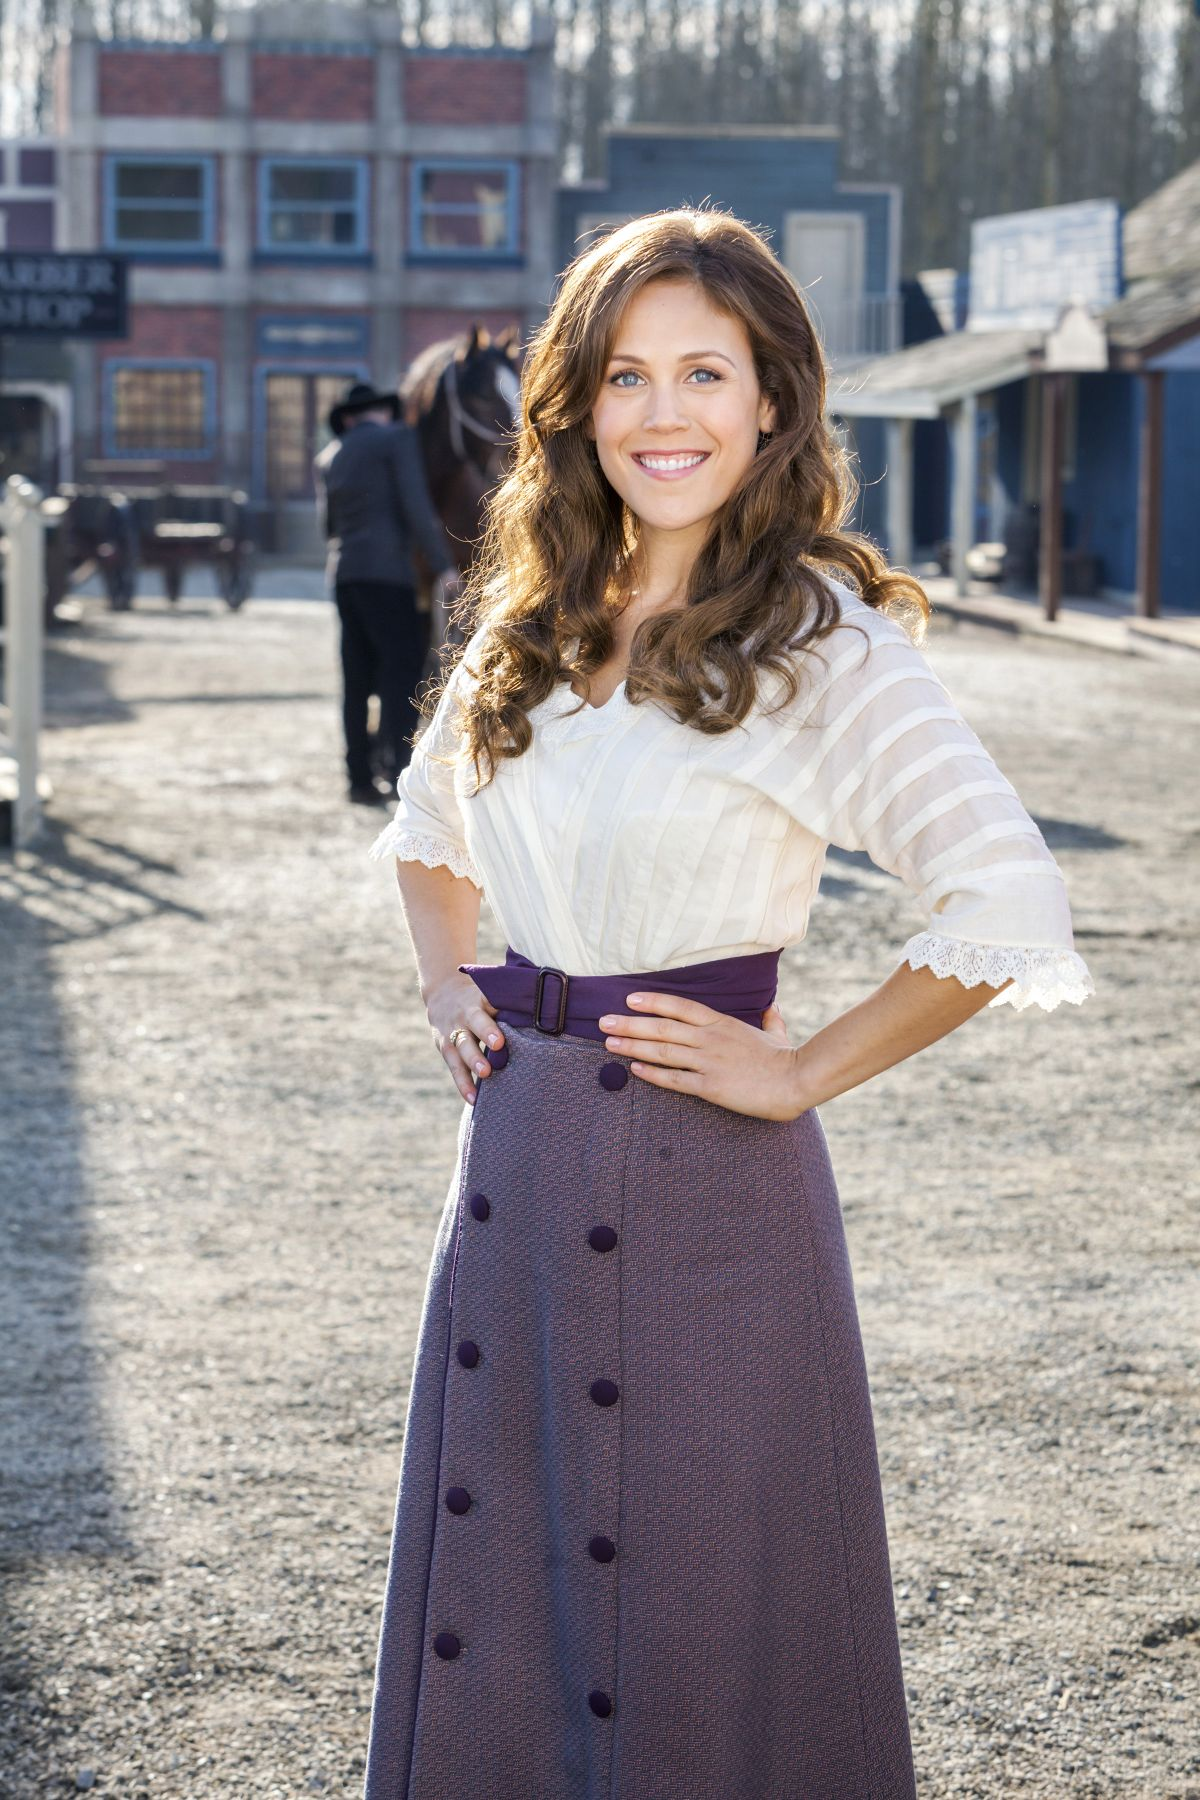 erin krakow and daniel lissing relationshiperin krakow facebook, erin krakow height, erin krakow family, erin krakow films, erin krakow instagram, erin krakow, erin krakow husband, erin krakow and daniel lissing, erin krakow biography, erin krakow boyfriend, erin krakow twitter, erin krakow and daniel lissing relationship, erin krakow and daniel lissing on home and family, erin krakow married, erin krakow bio, erin krakow movies, erin krakow dating, erin krakow age and height, erin krakow and daniel lissing married, erin krakow army wives